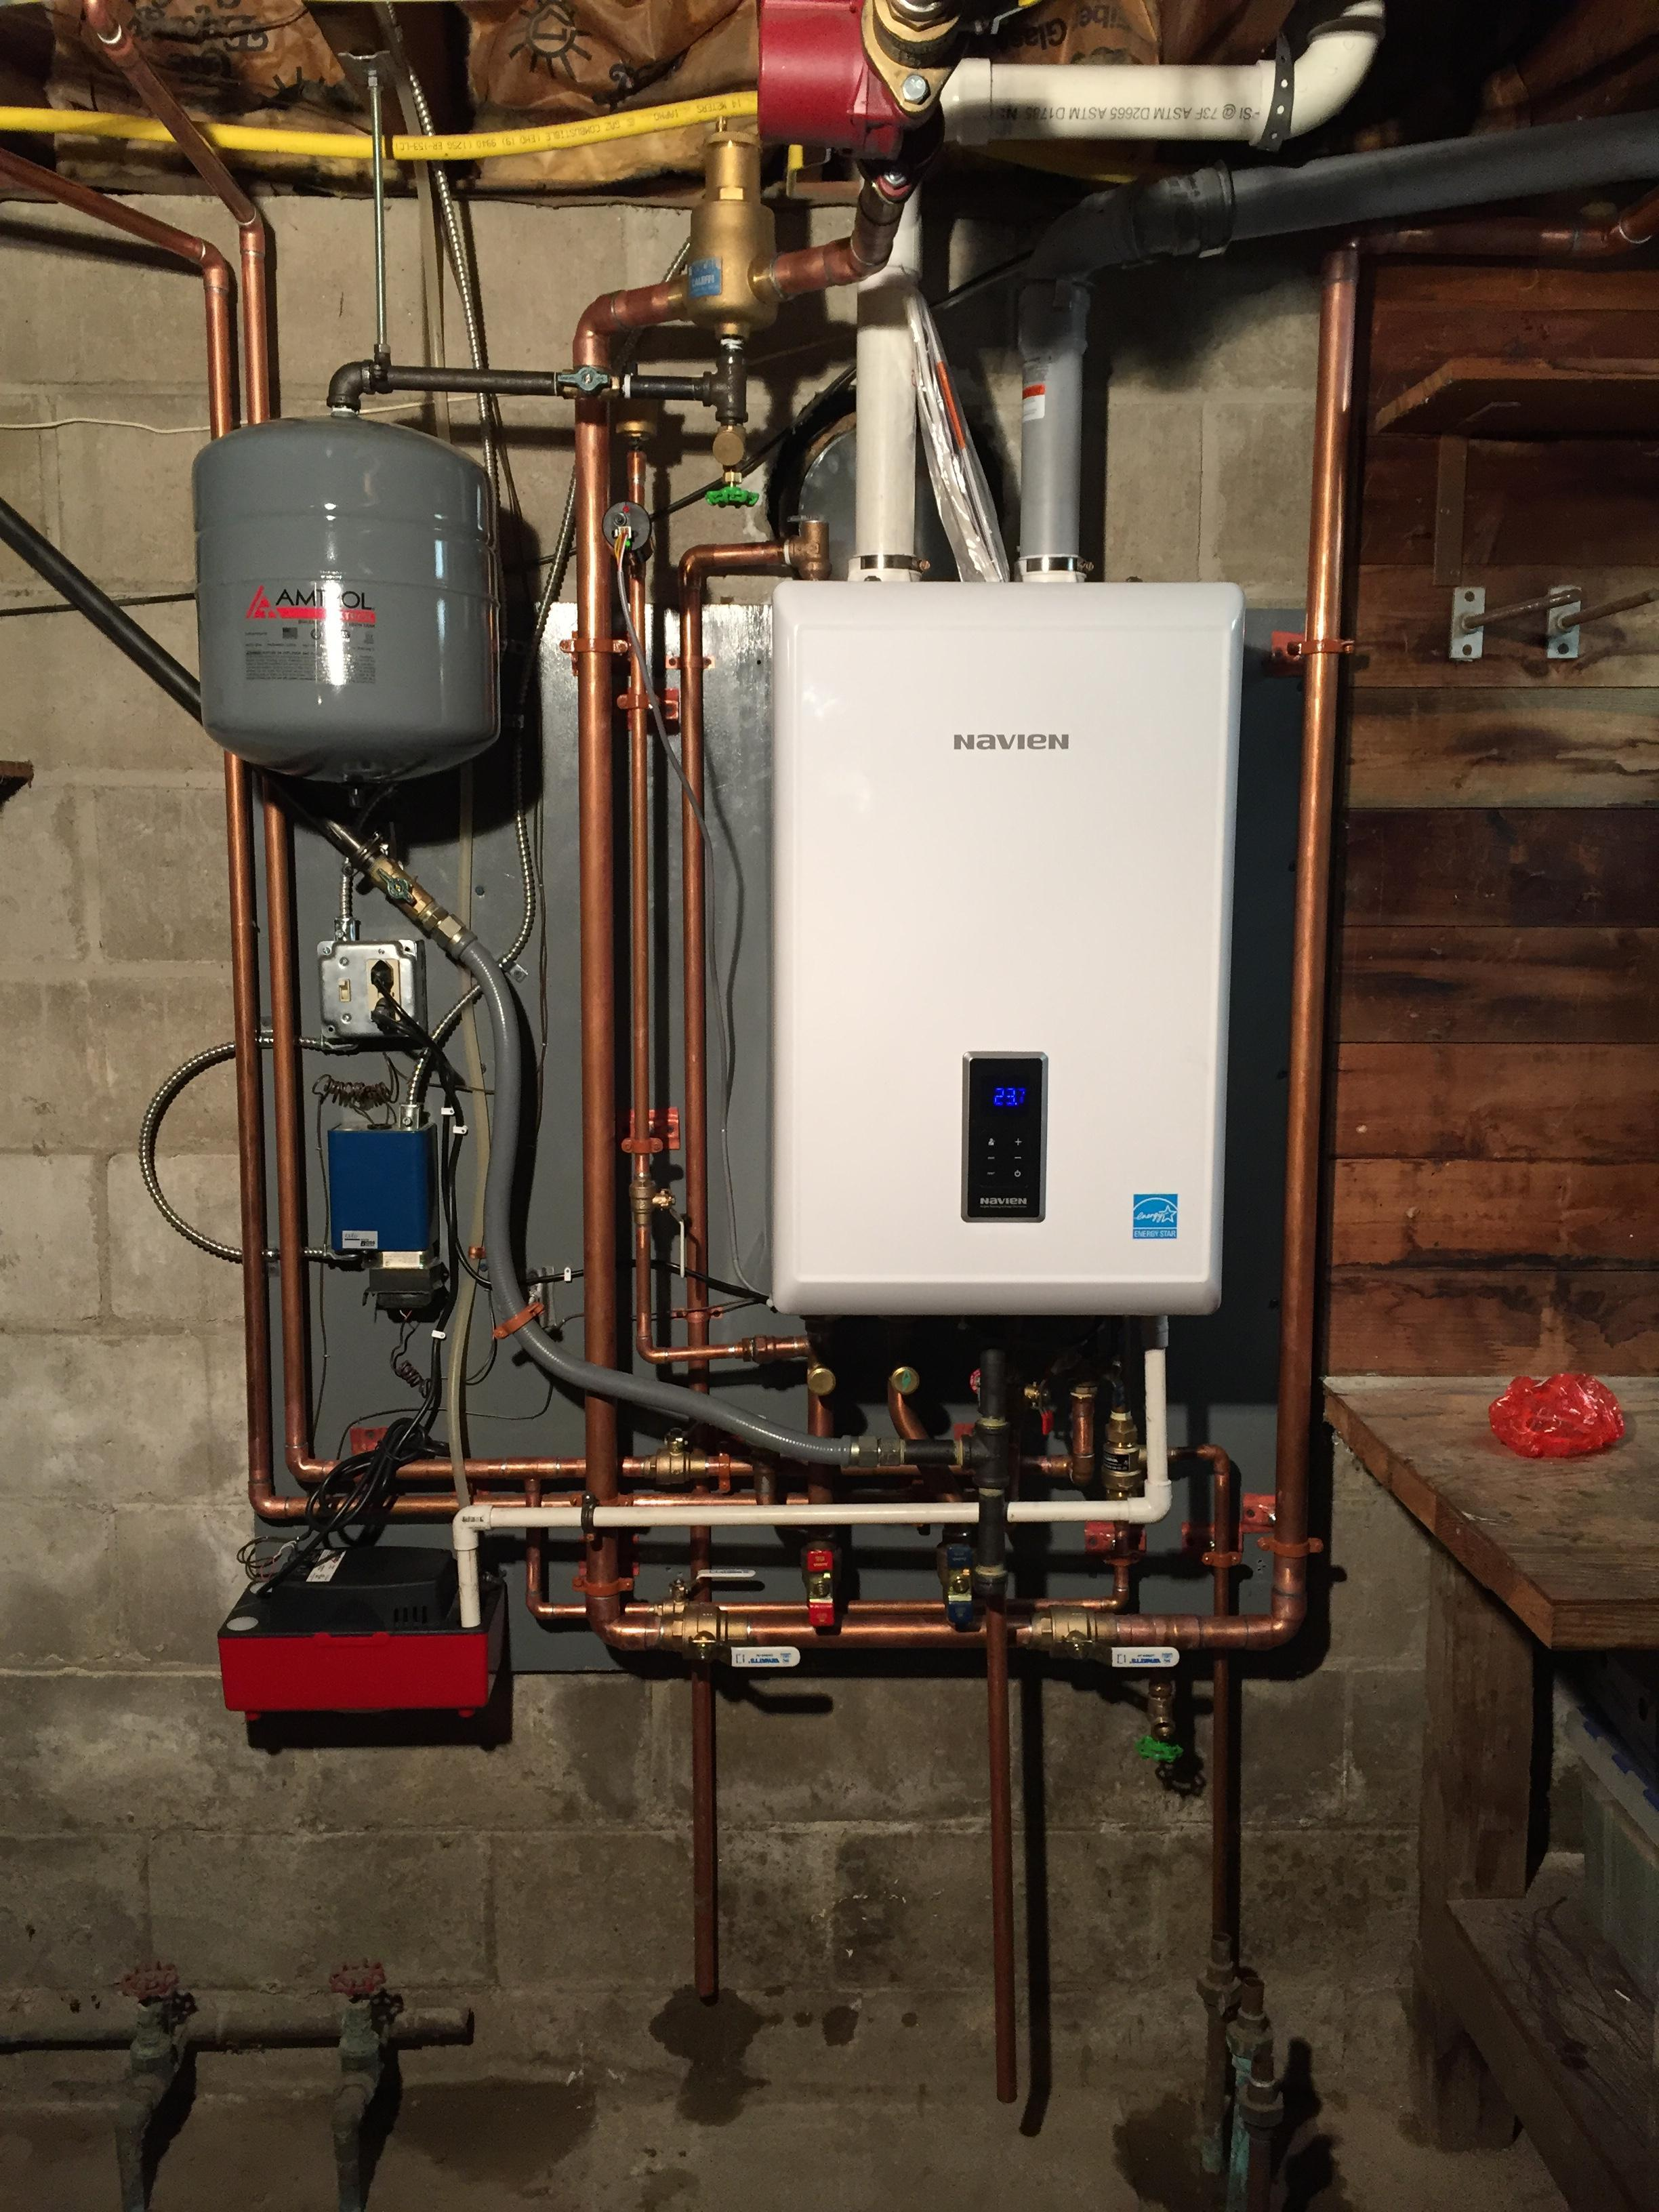 Adam's Plumbing, Heating & Air Conditioning